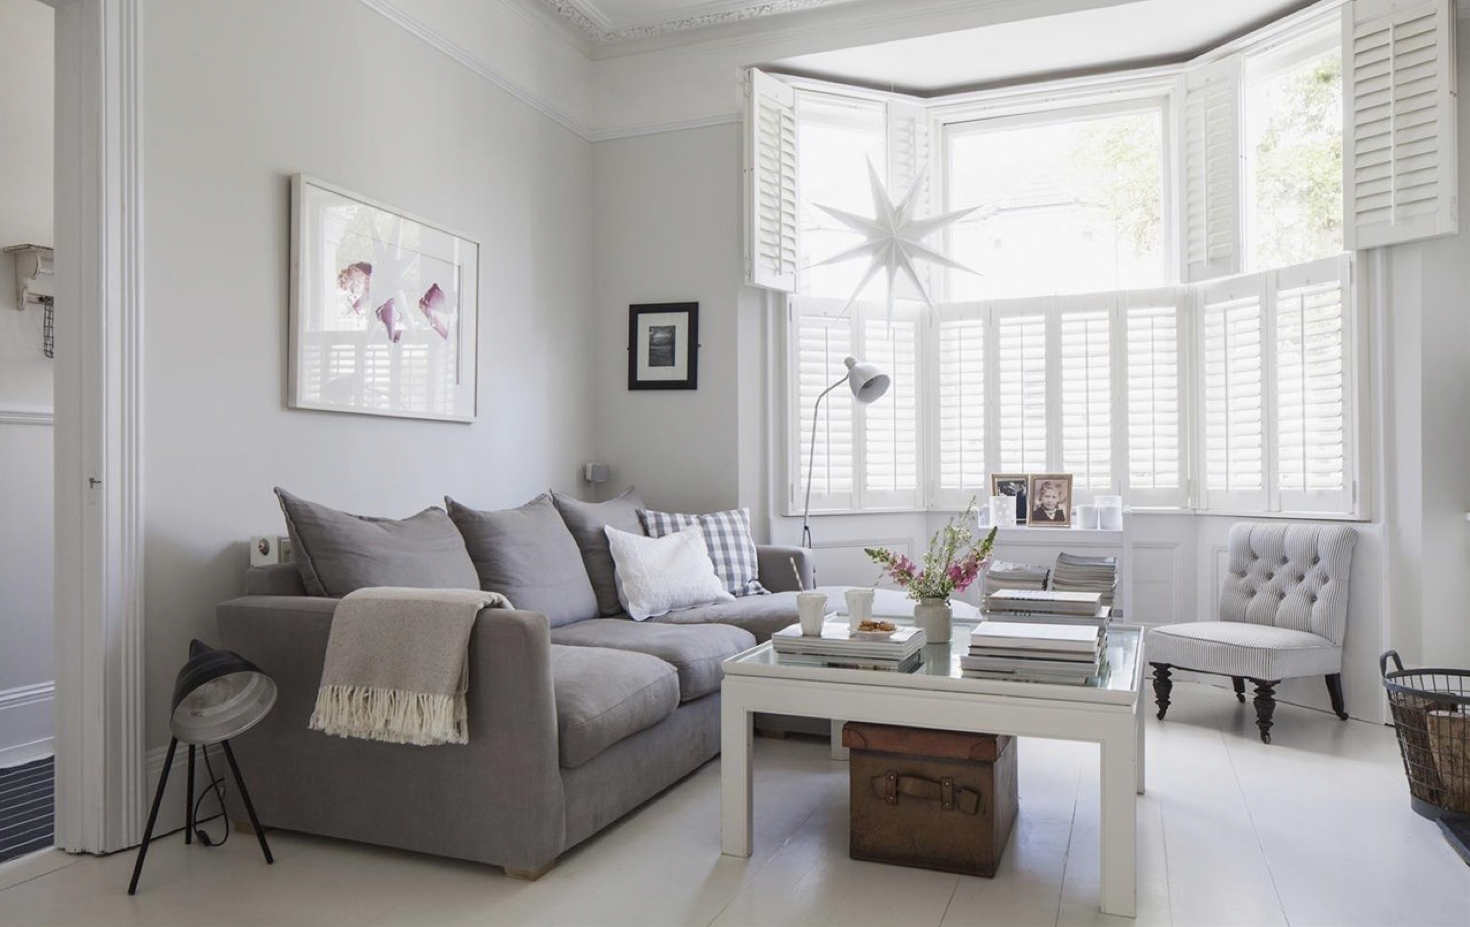 victorian terrace sitting room plantation shutters white wooden floors grey sofa light grey. Black Bedroom Furniture Sets. Home Design Ideas